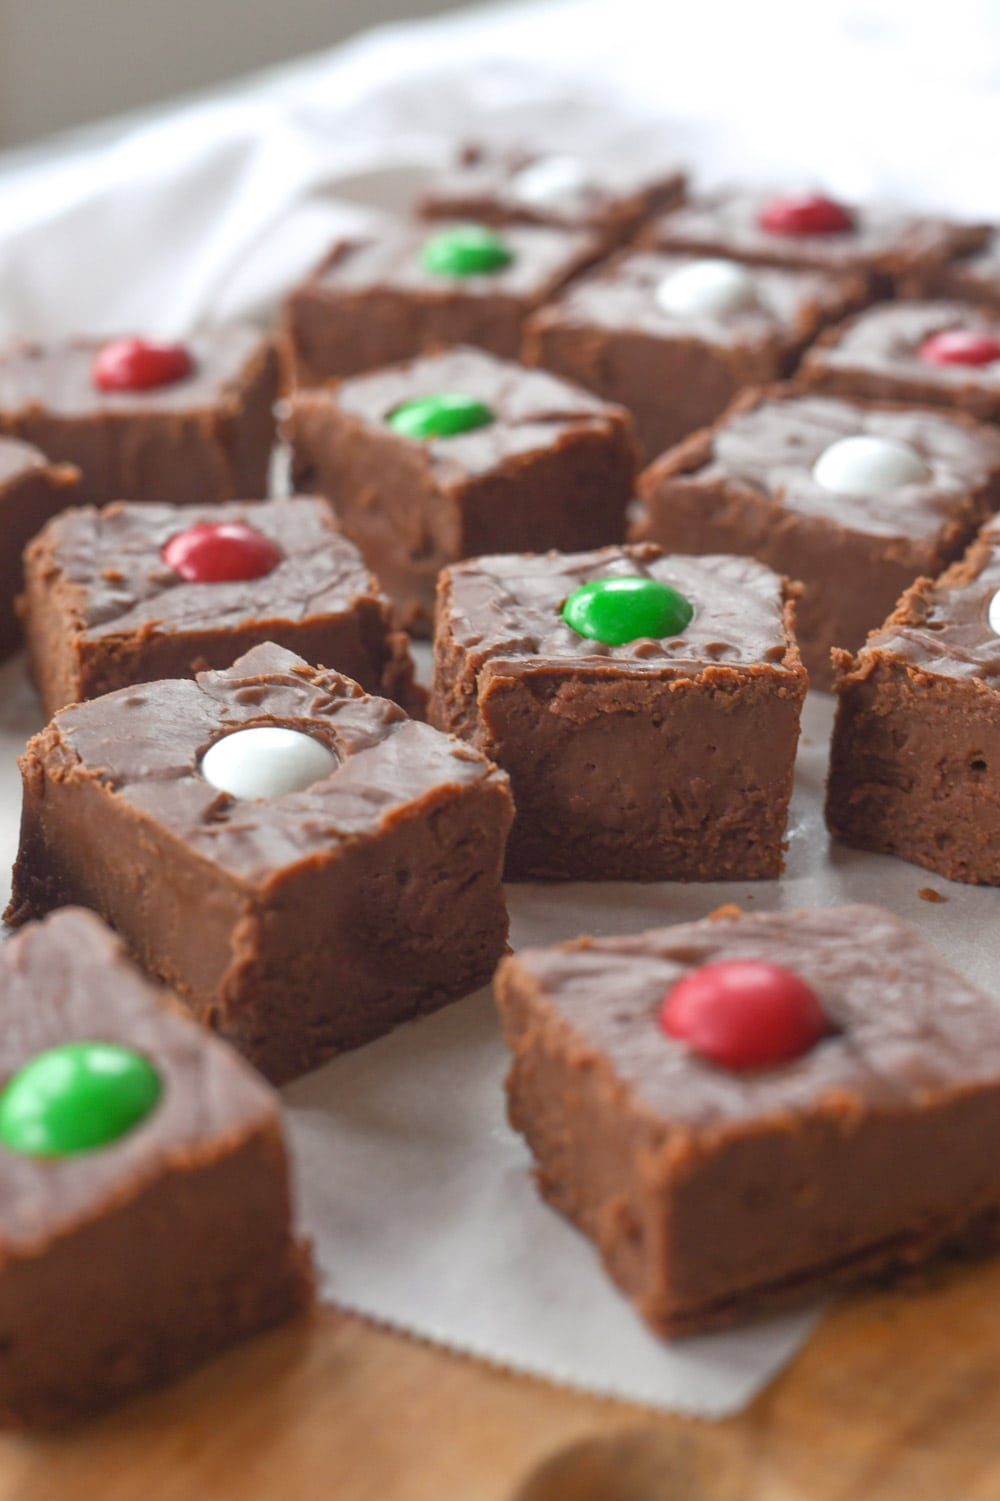 Pieces of peppermint fudge